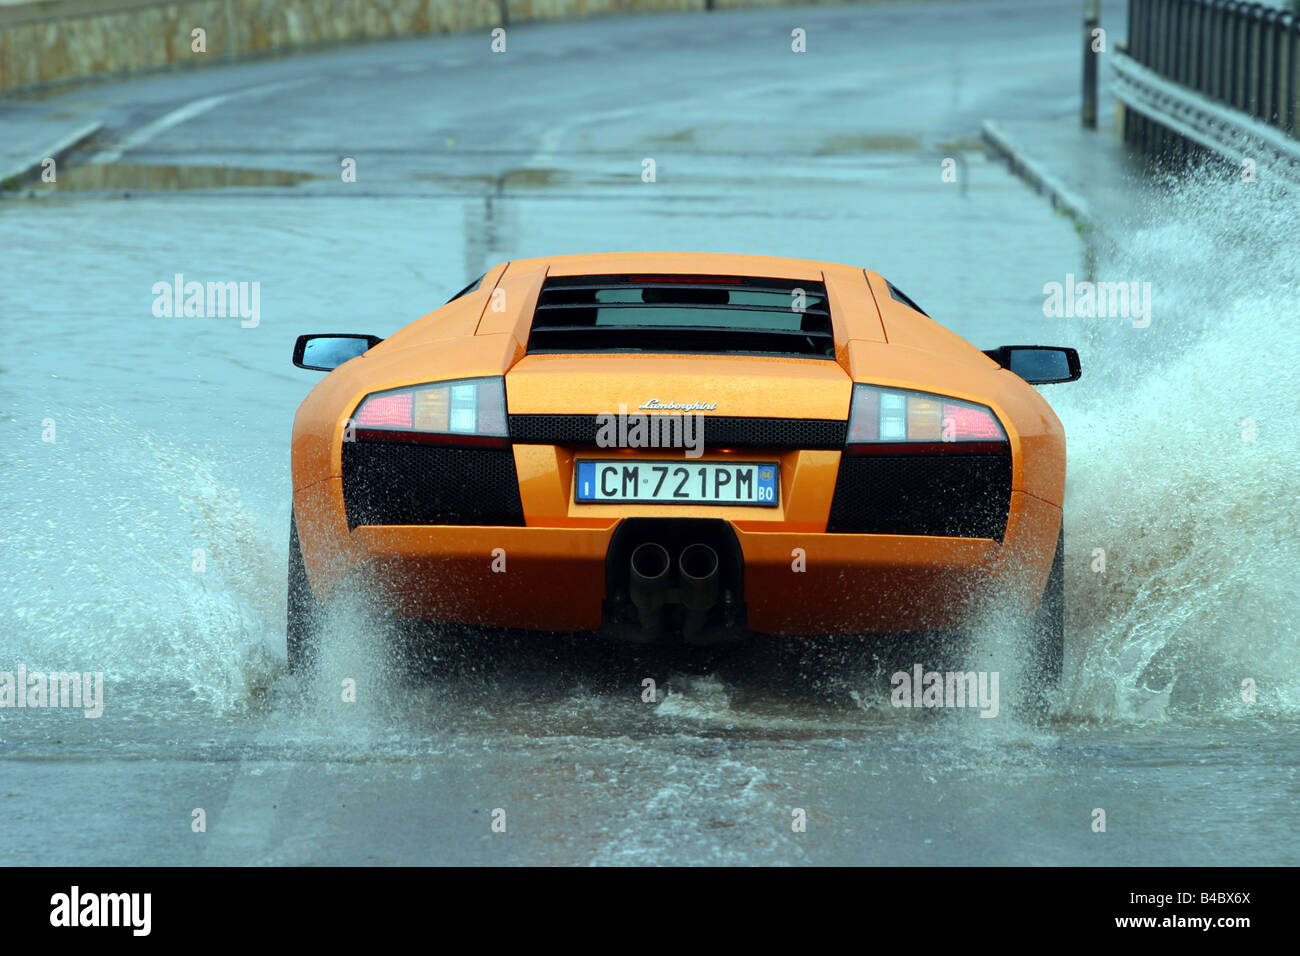 Car, Lamborghini Murcielago, Roadster, Model Year 2001 , Coupe/coupe,  Orange , Driving, Rear View, Test Track, Water, Wet Highwa